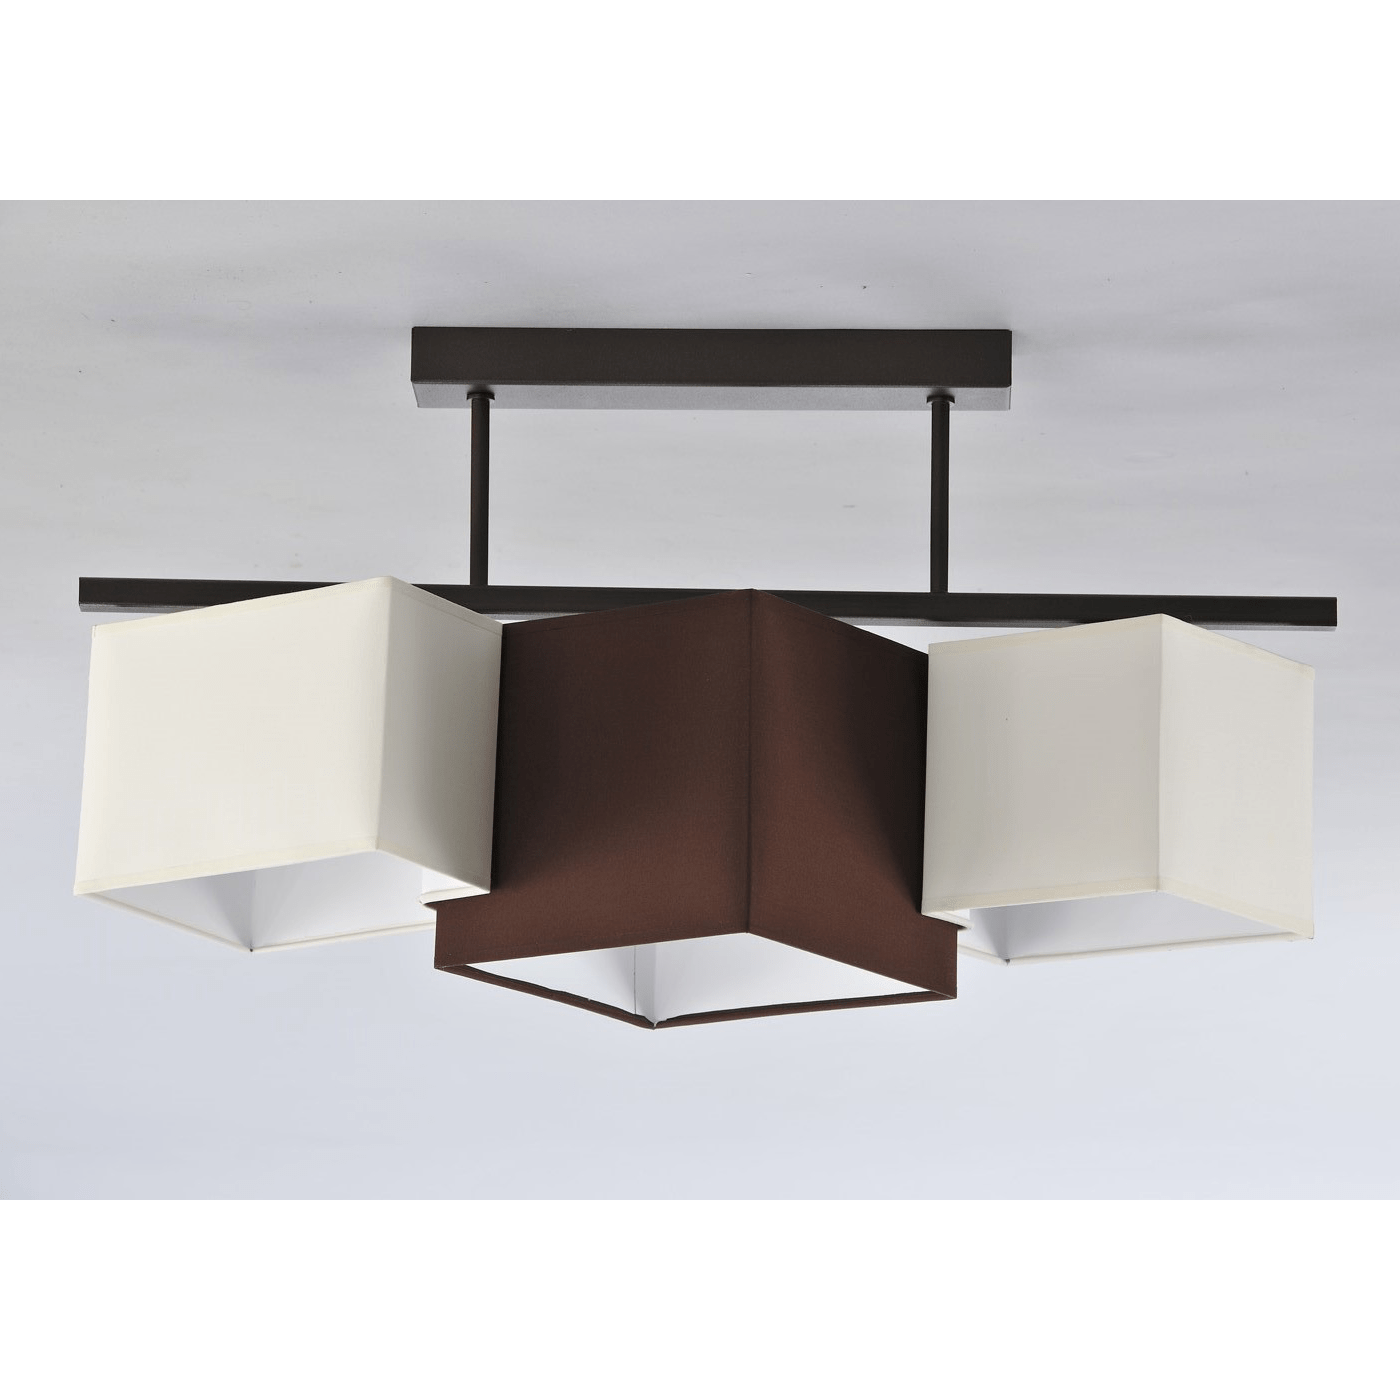 Ceiling lamp PUZZLE BELKA No. 3770